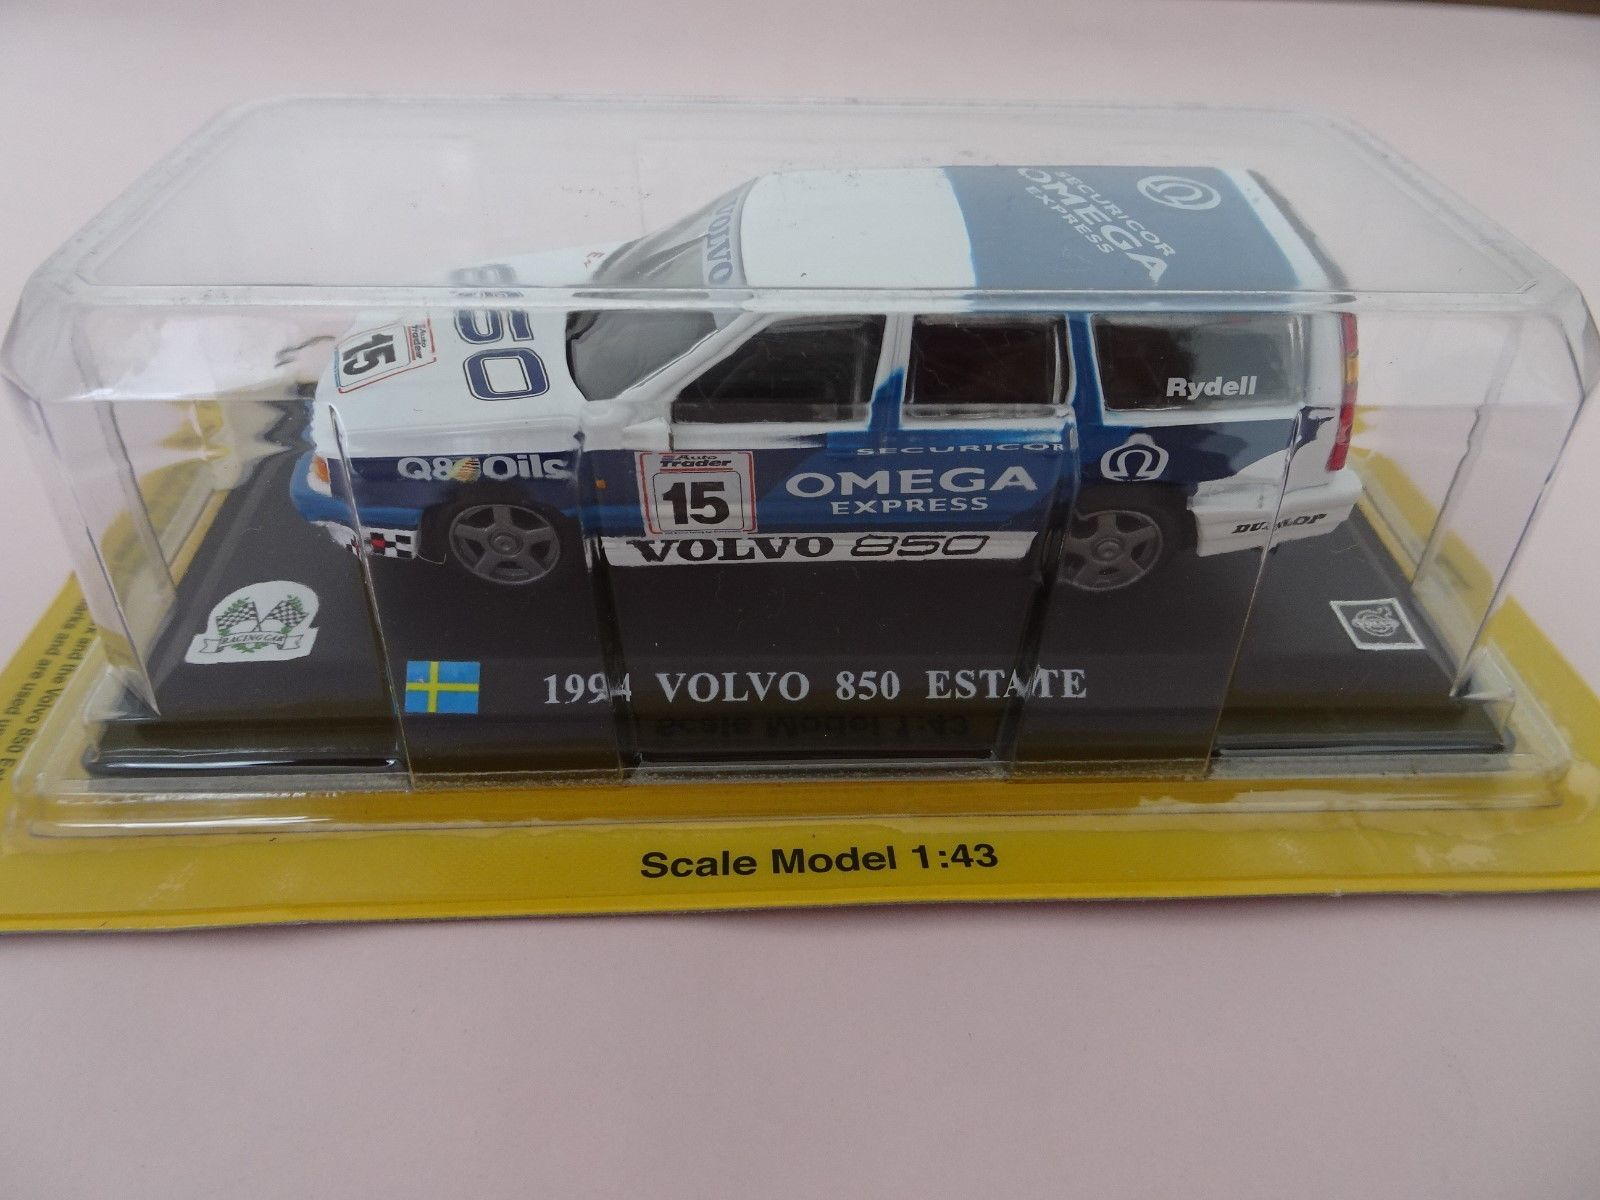 P: Volvo 850 Estate 1994 BTCC - model 1:43